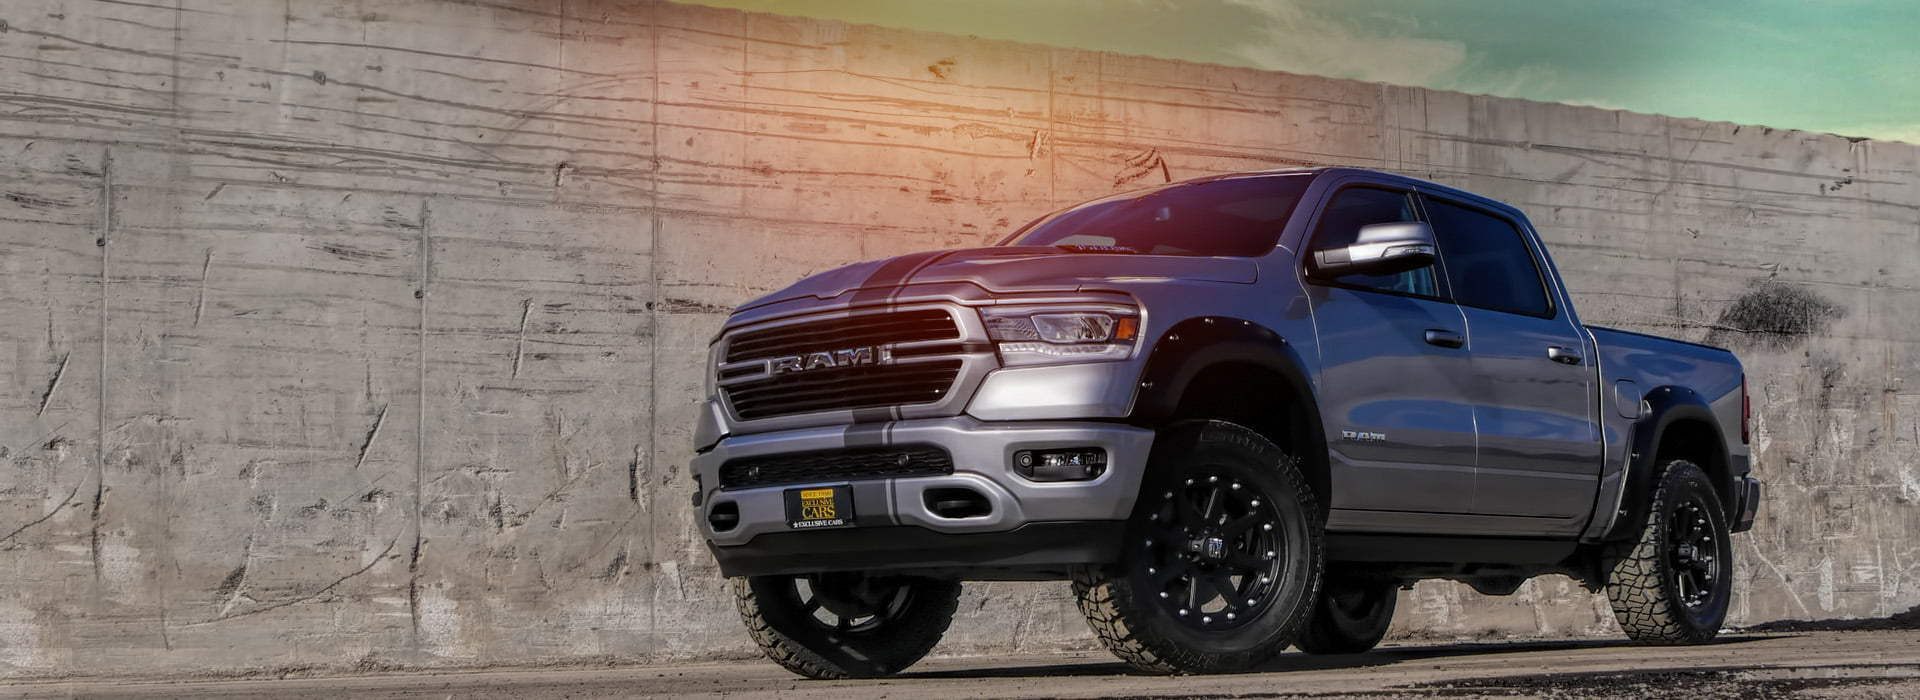 2020 Ram Offroad Edition